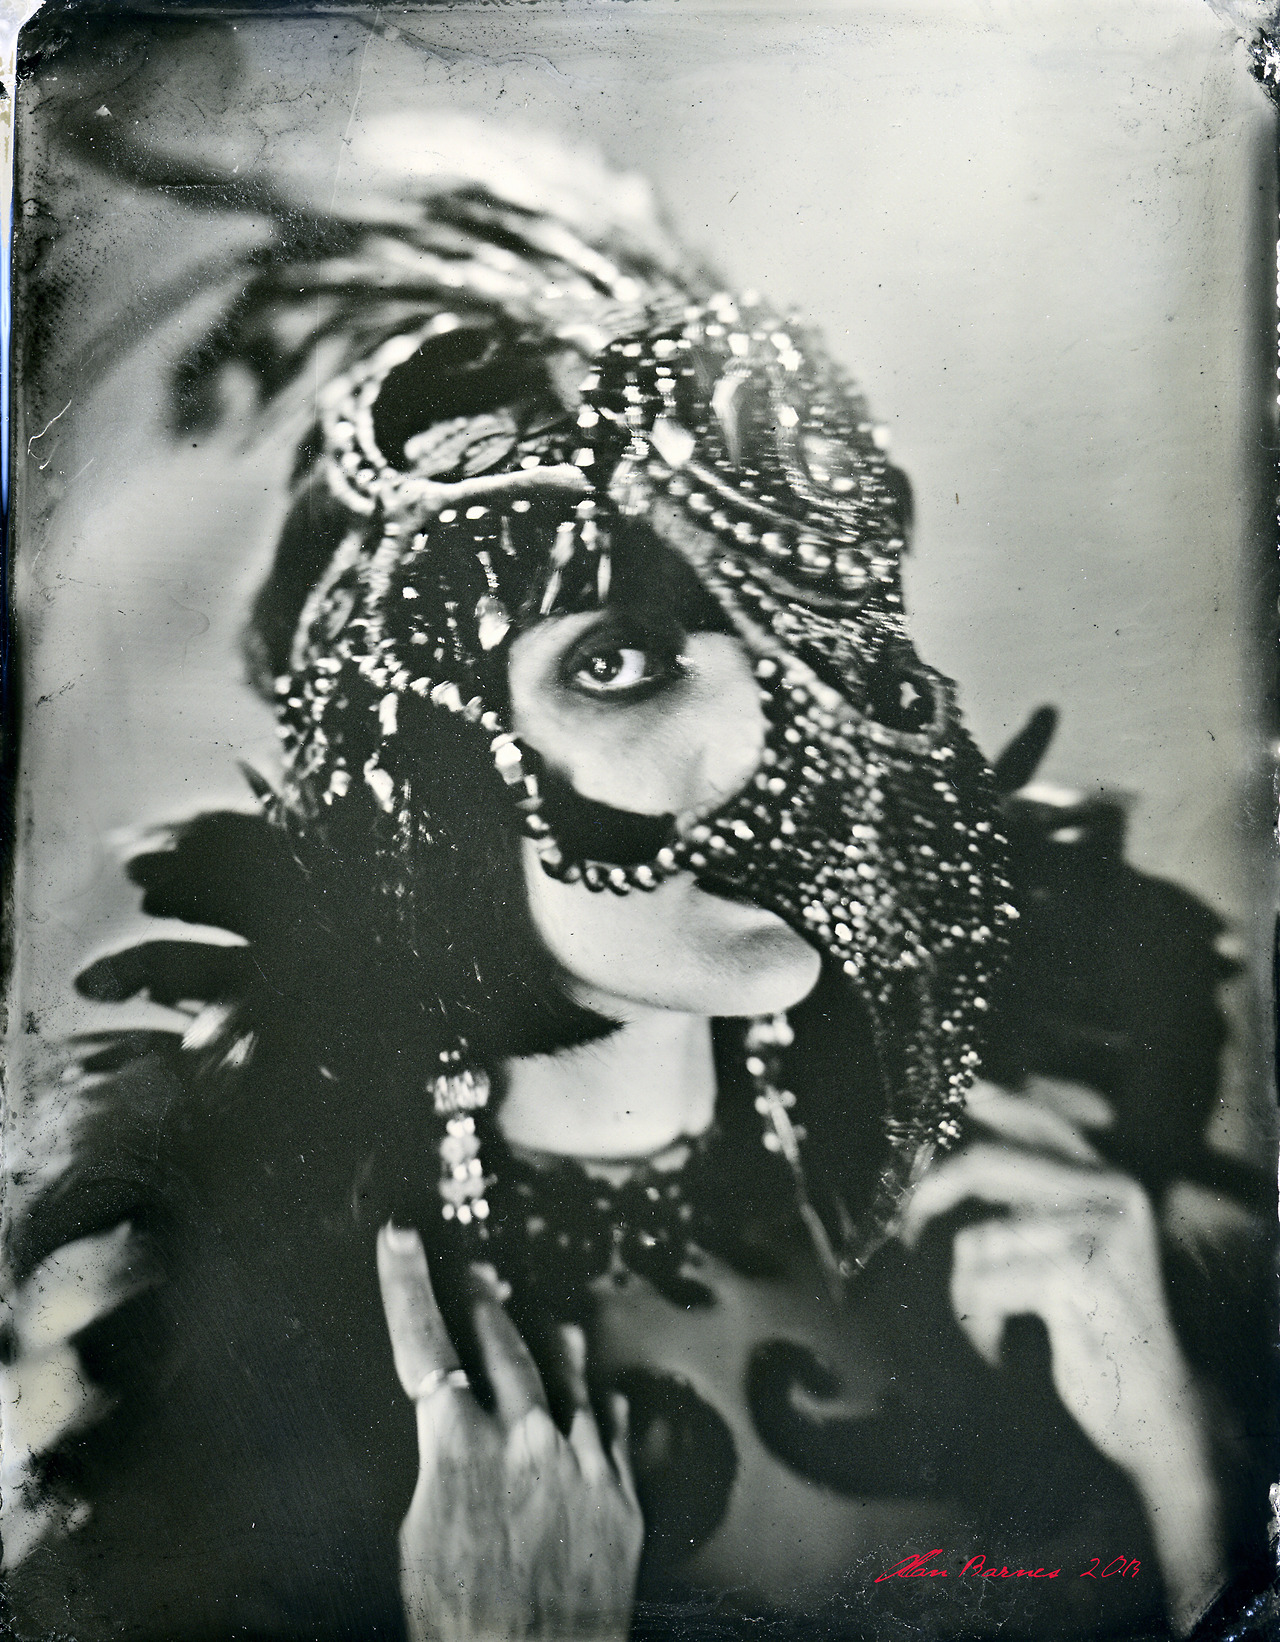 allanbarnes :     Cleo Viper, Los Angeles, 6.26.2013   wet plate collodion on aluminum.   Mask by Candice Angelini, Paris.     wonderous.